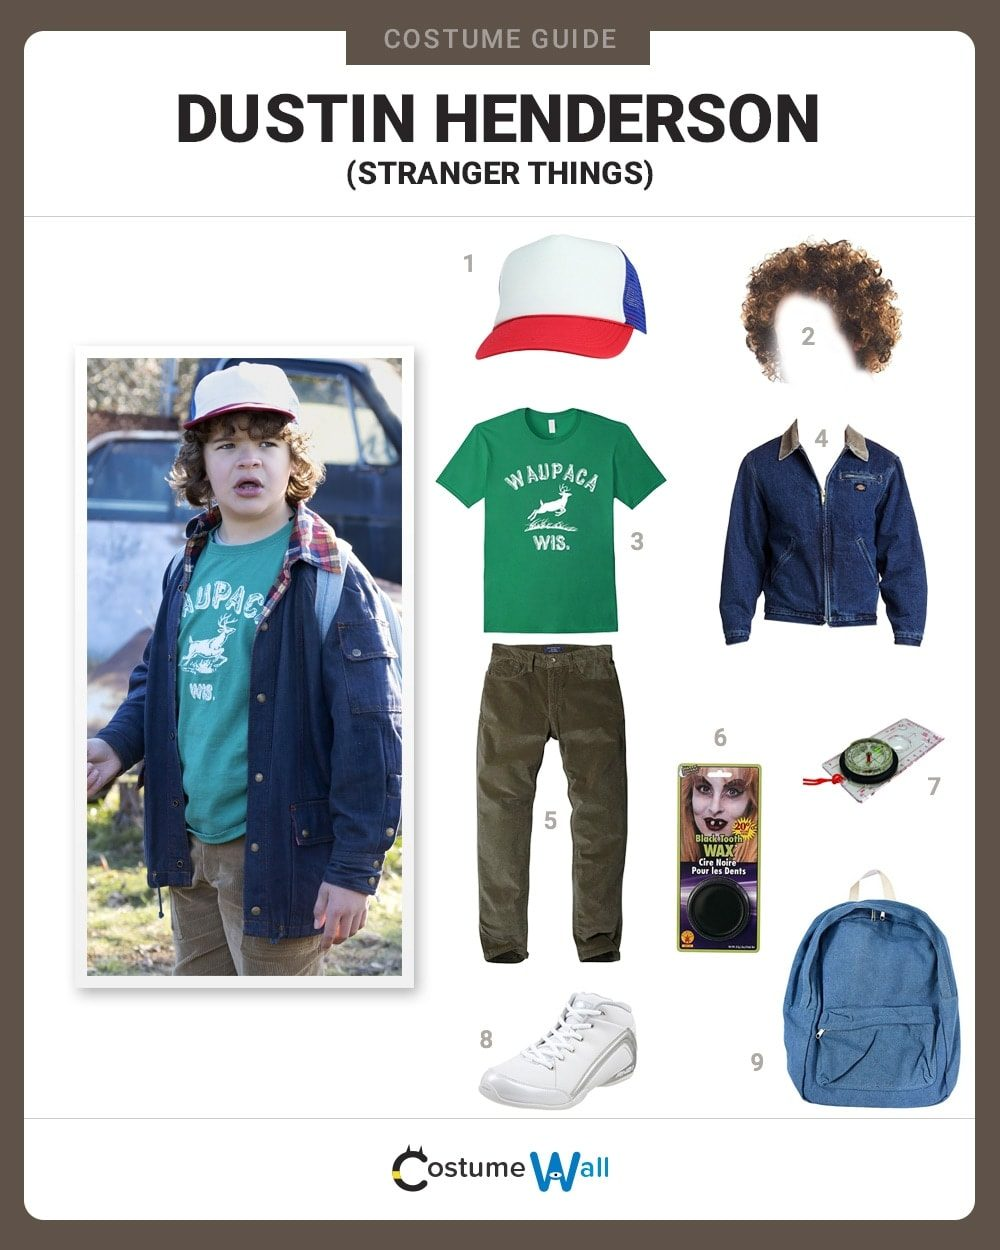 Dustin Henderson Costume Guide